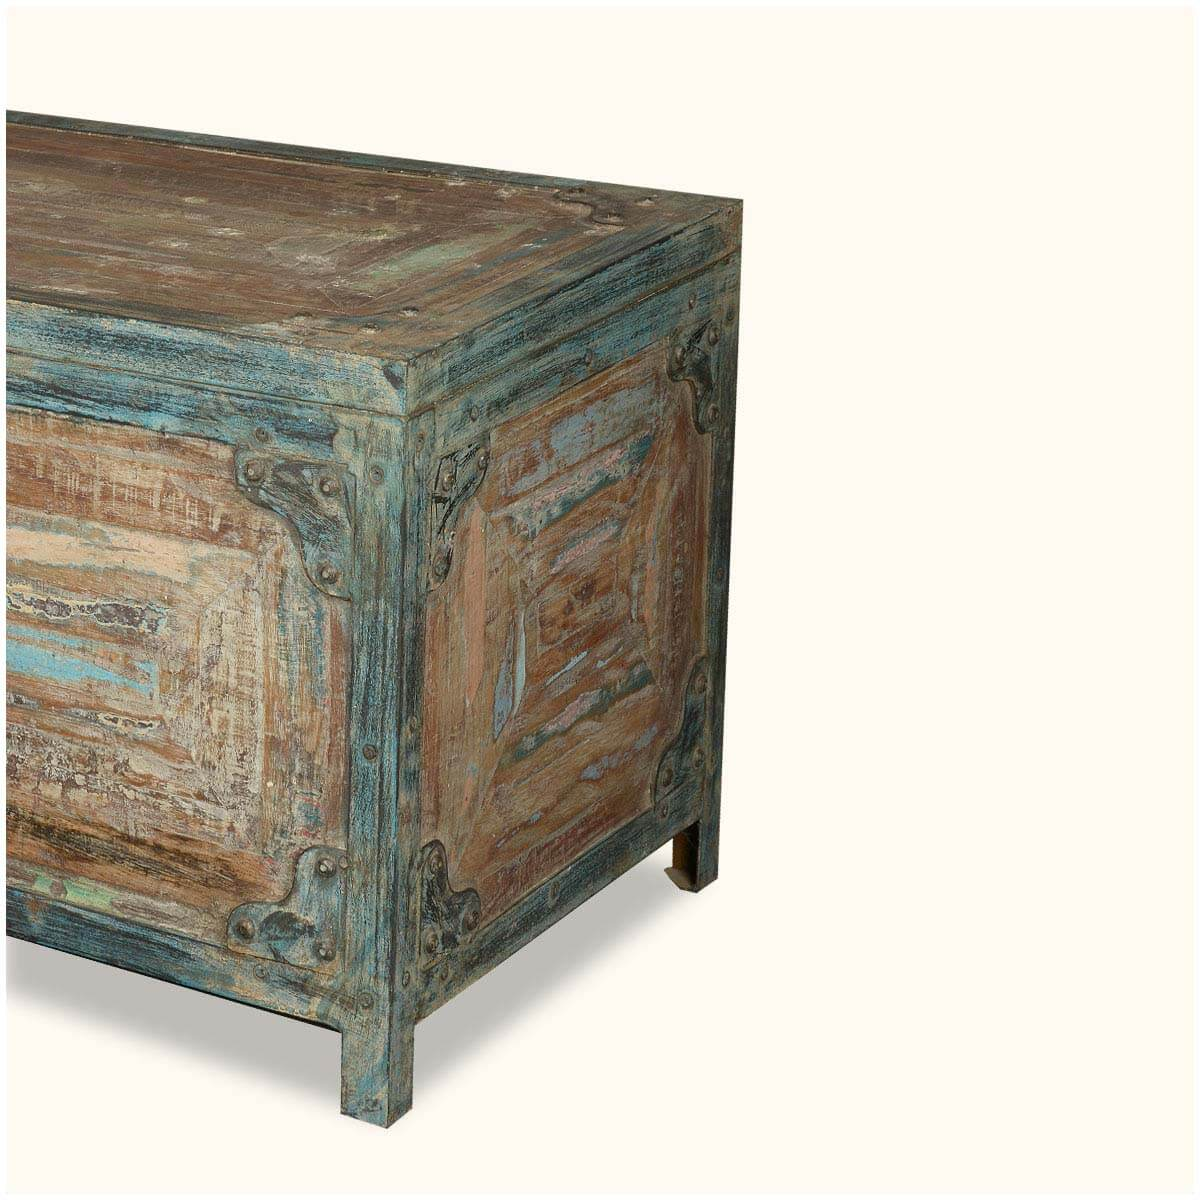 Lost Treasures Reclaimed Wood Iron Standing Coffee Table Chest